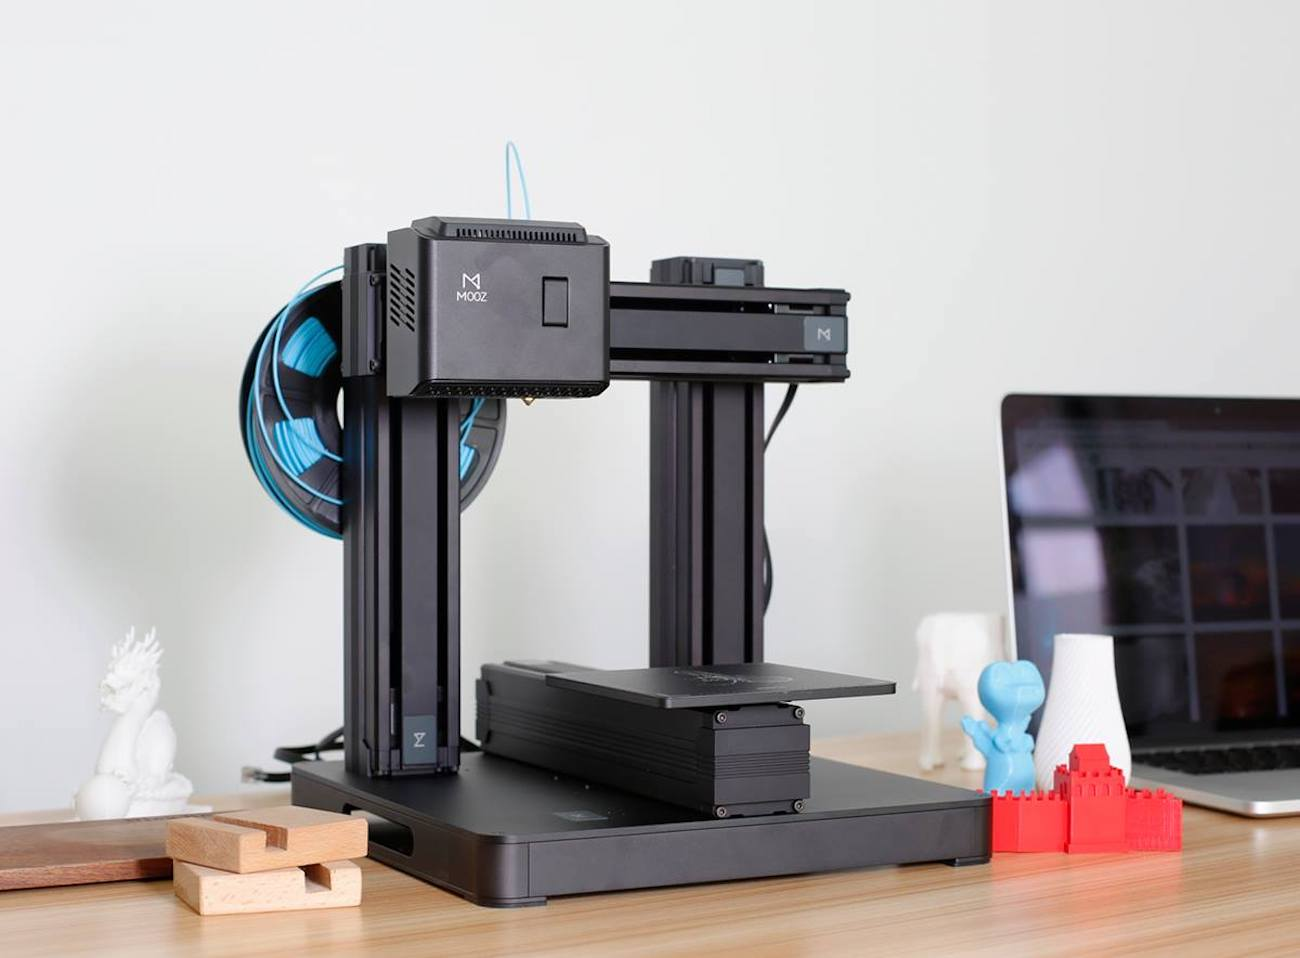 Mooz Is the Ultimate 3D Printer for Makers